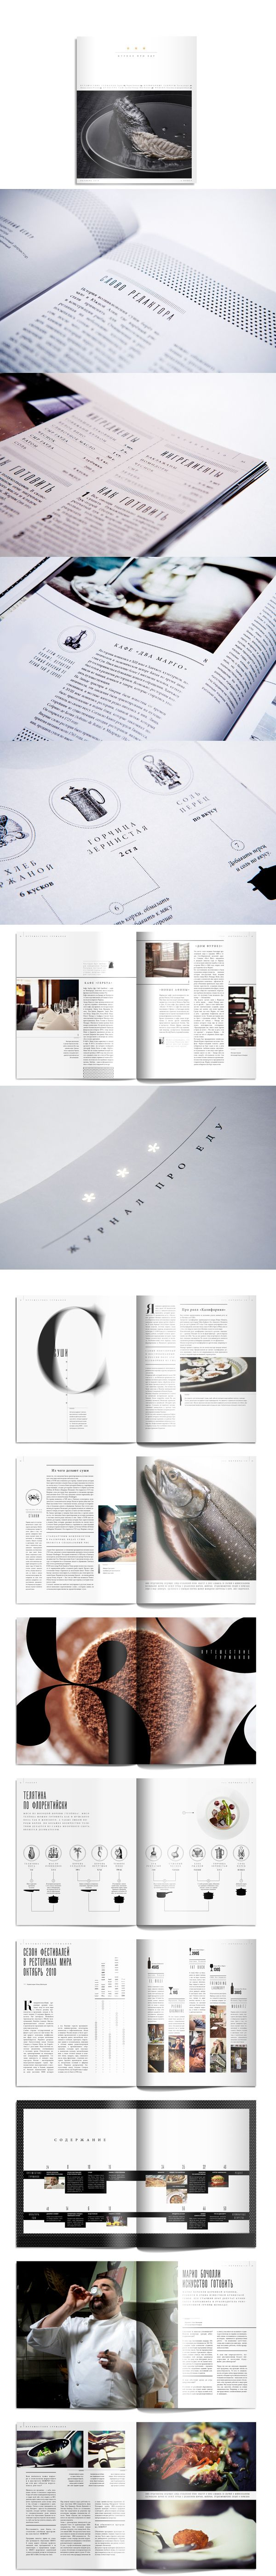 /// Food Magazine Editorial Design #editorial #magazine #print